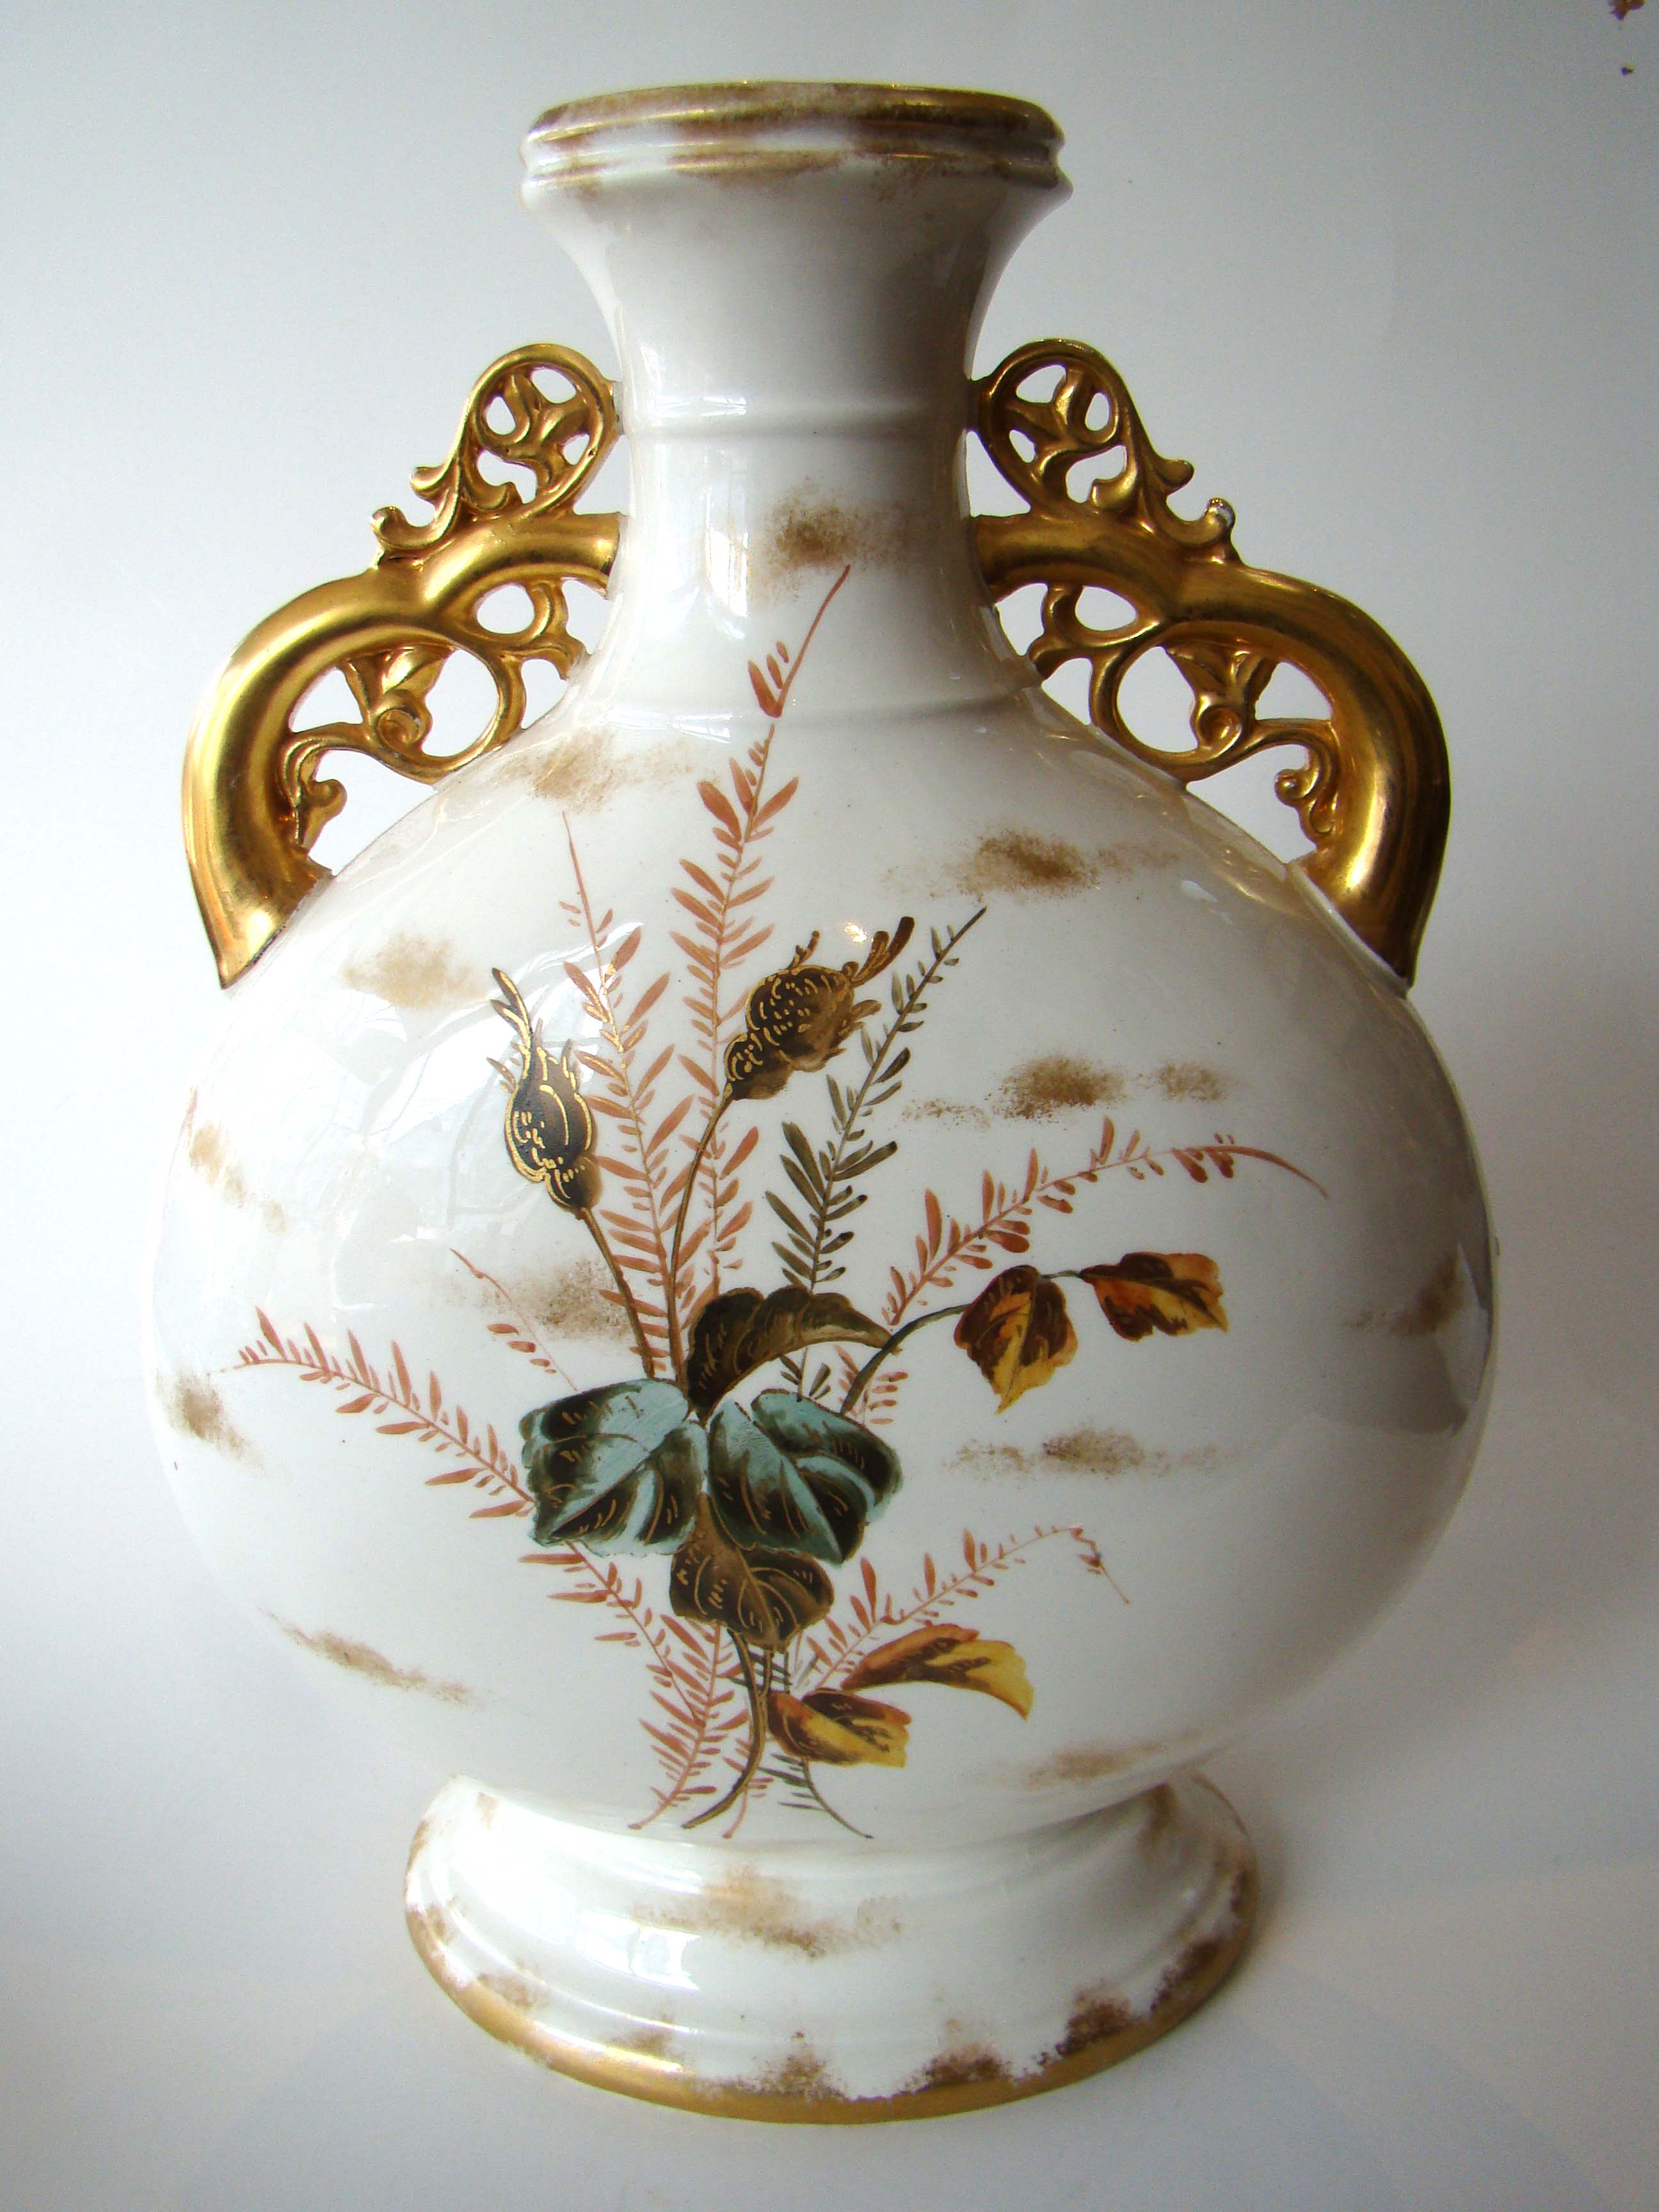 click to view larger image of A magnificent hand painted vintage two-handled vase circa 1880-1900